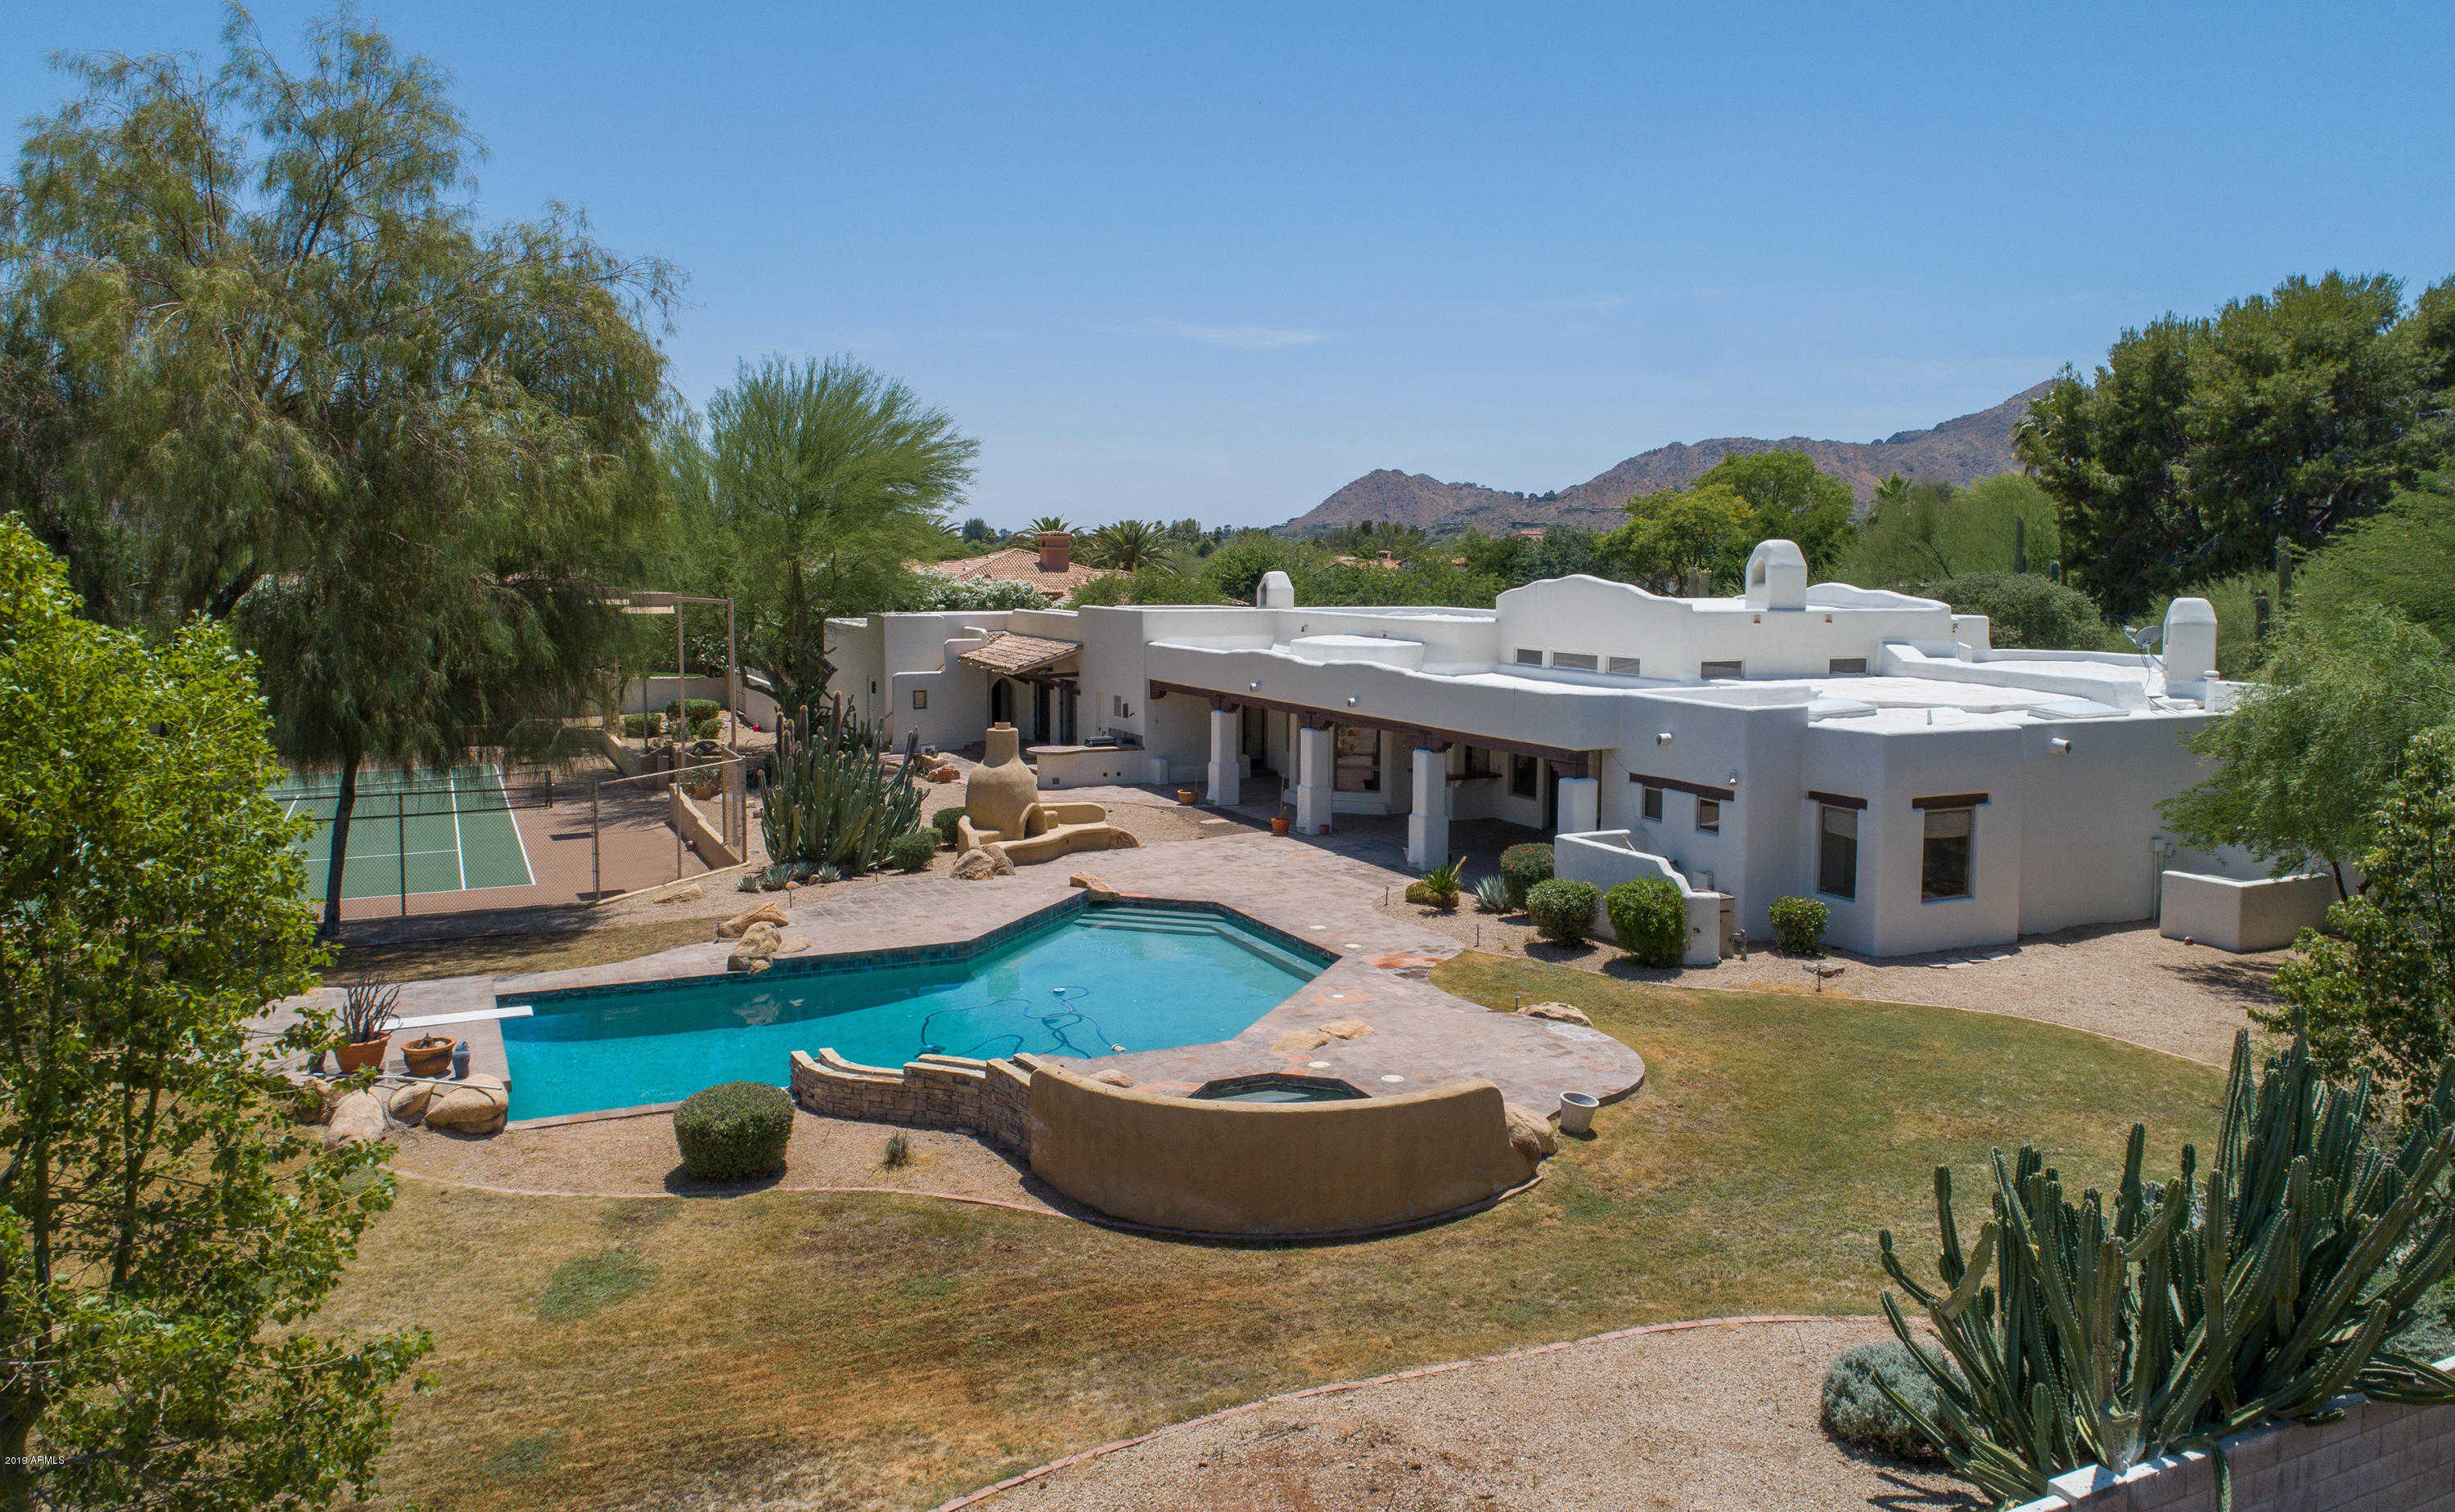 $2,100,000 - 6Br/6Ba - Home for Sale in Tatum Garden Estates 3, Paradise Valley